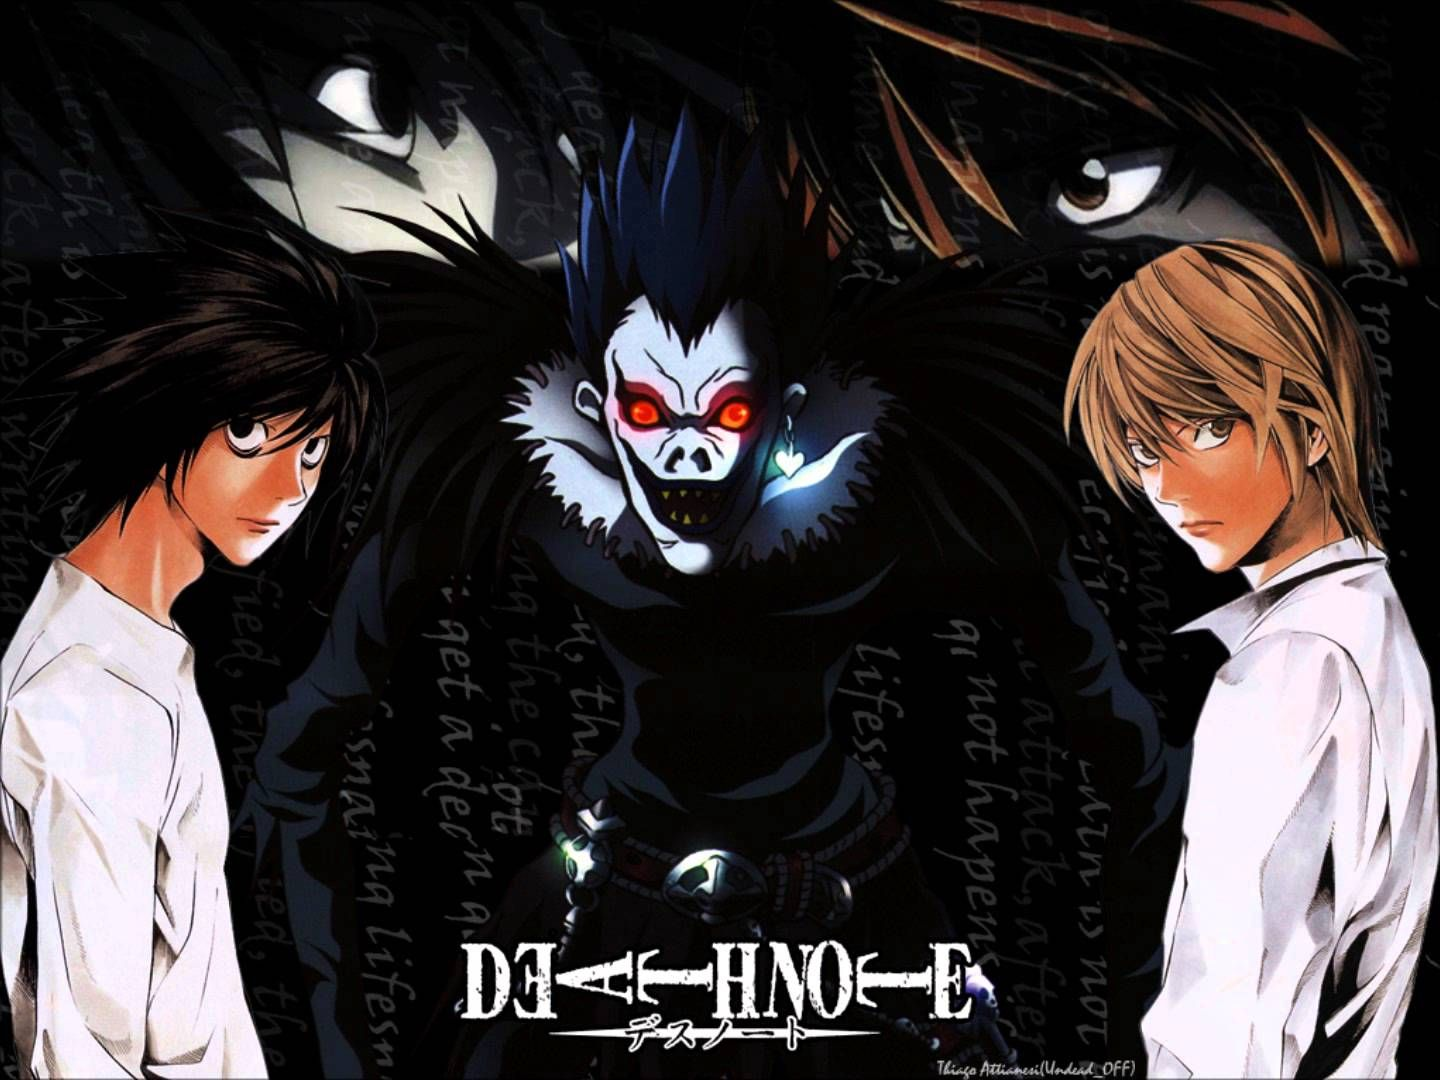 L. vs Kira Death note, Nota de muerte, Shinigami ryuk